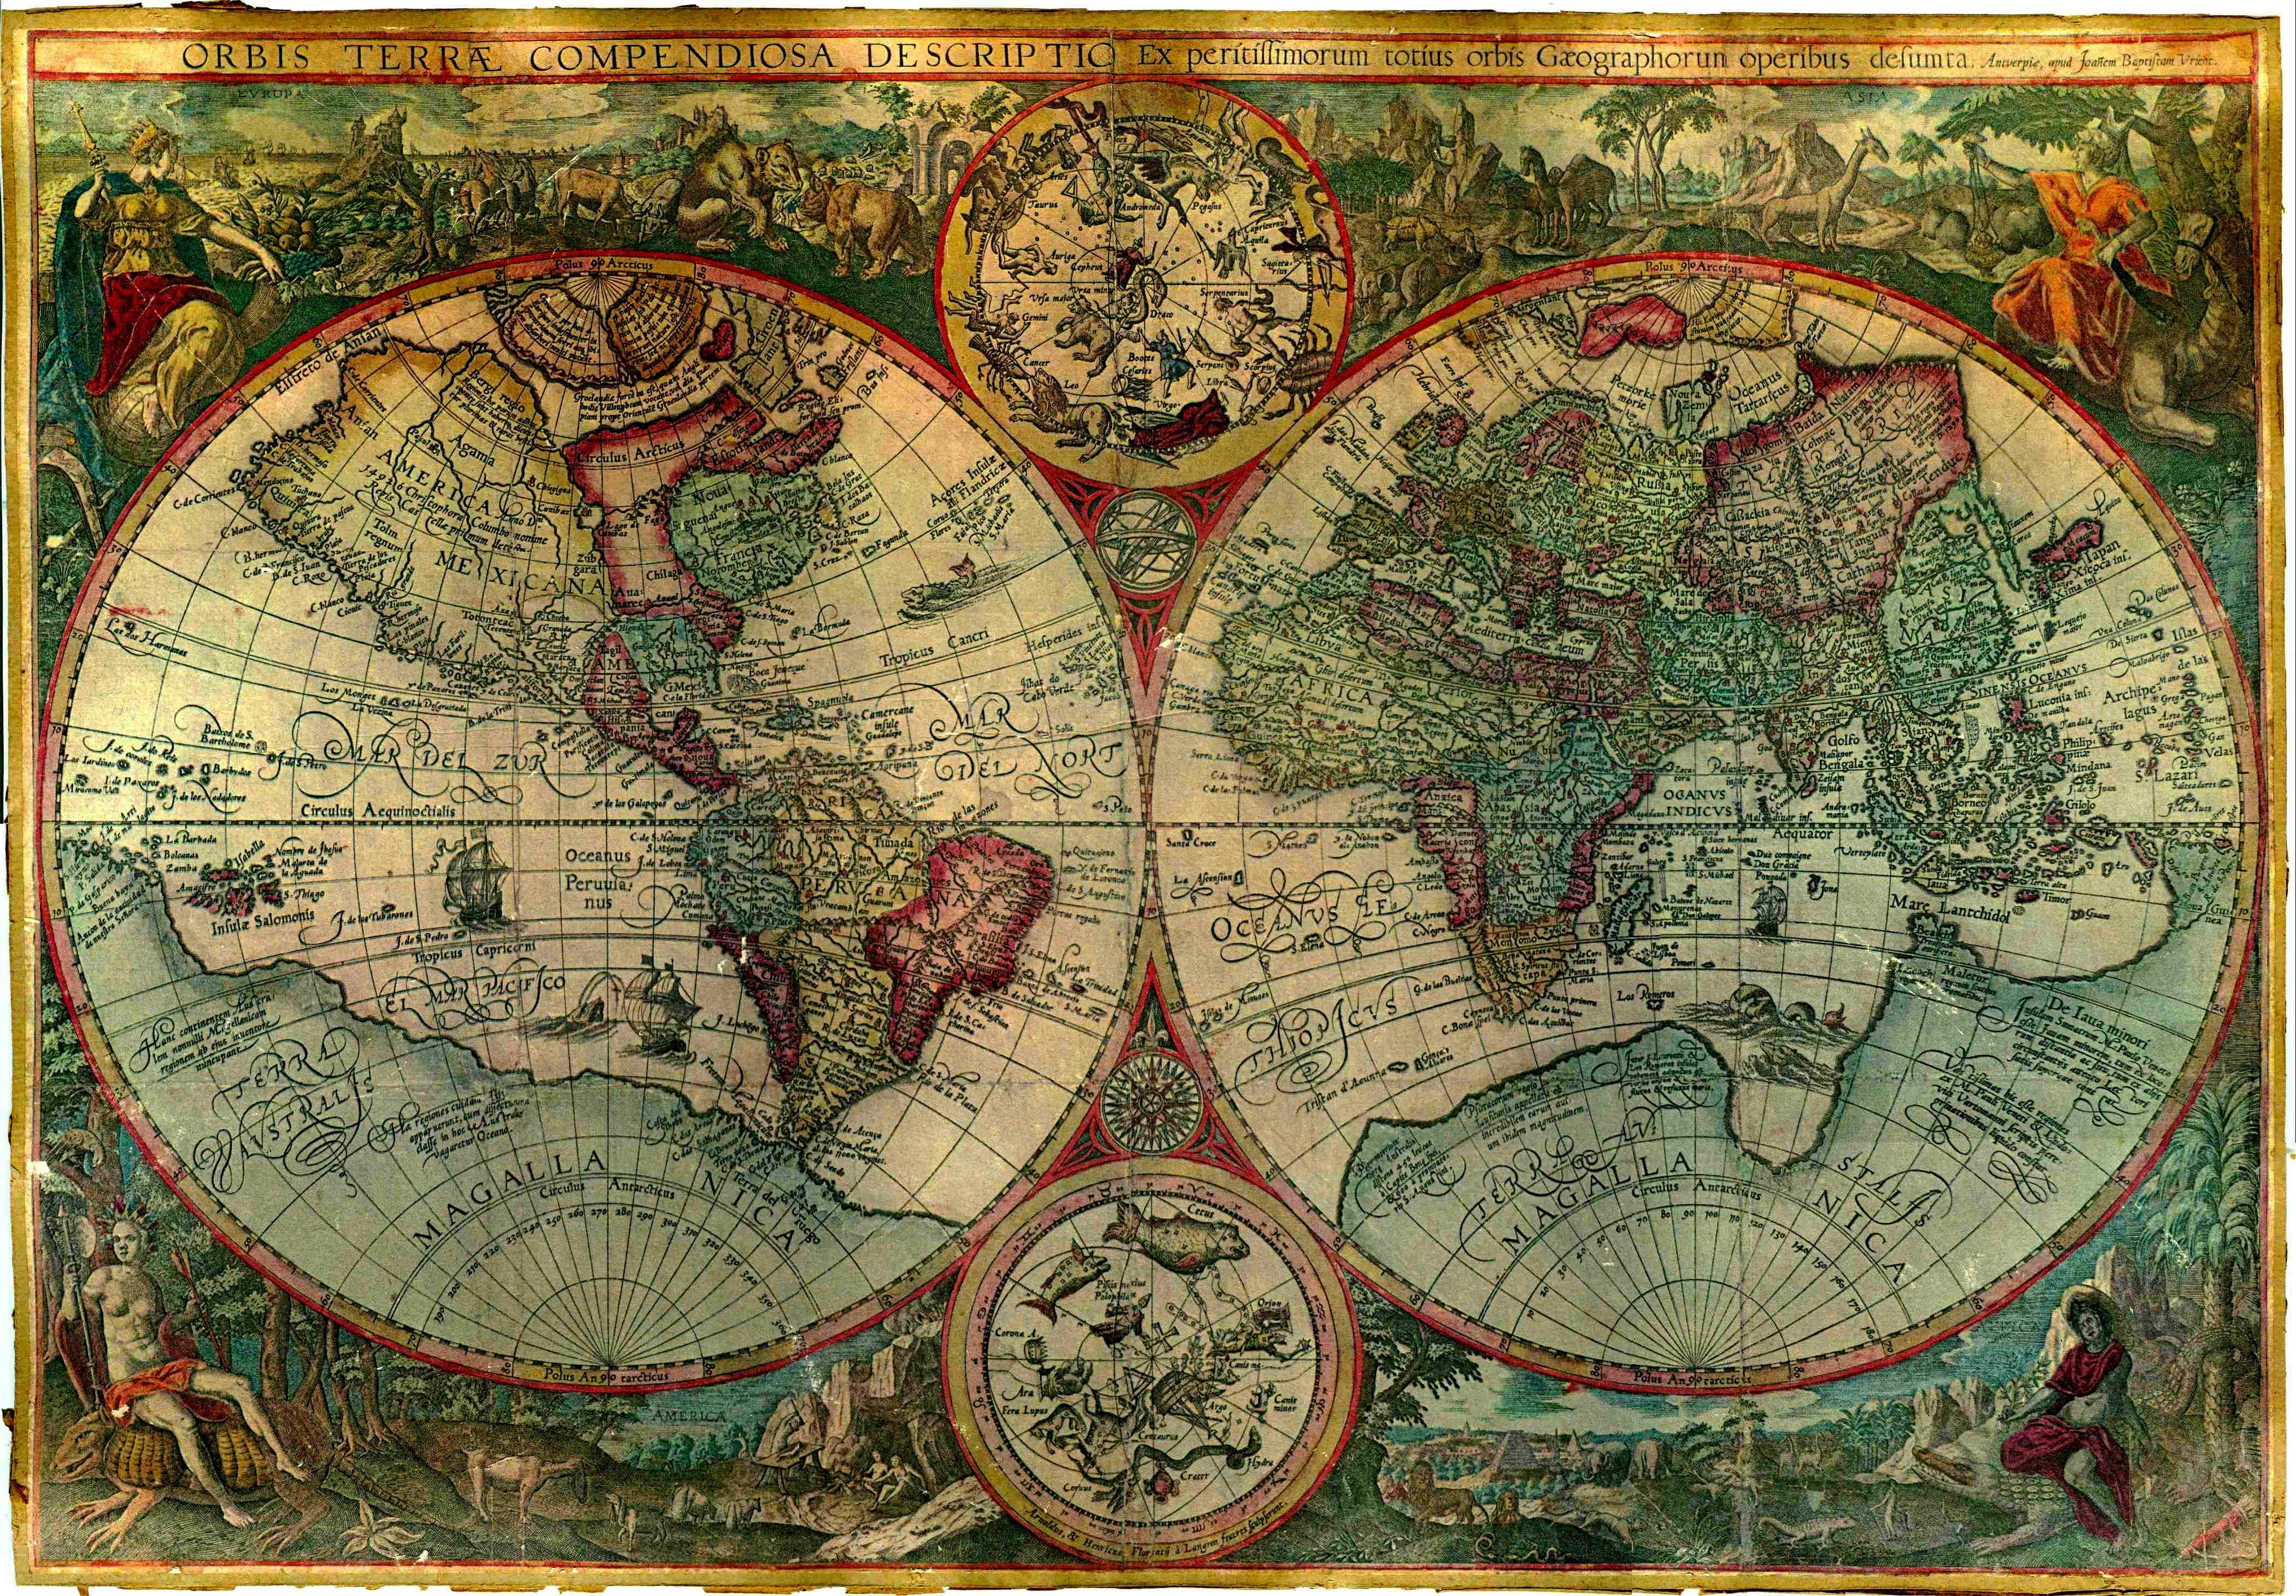 Atlas old google search escapes on the road pinterest explore old world maps old maps and more gumiabroncs Image collections